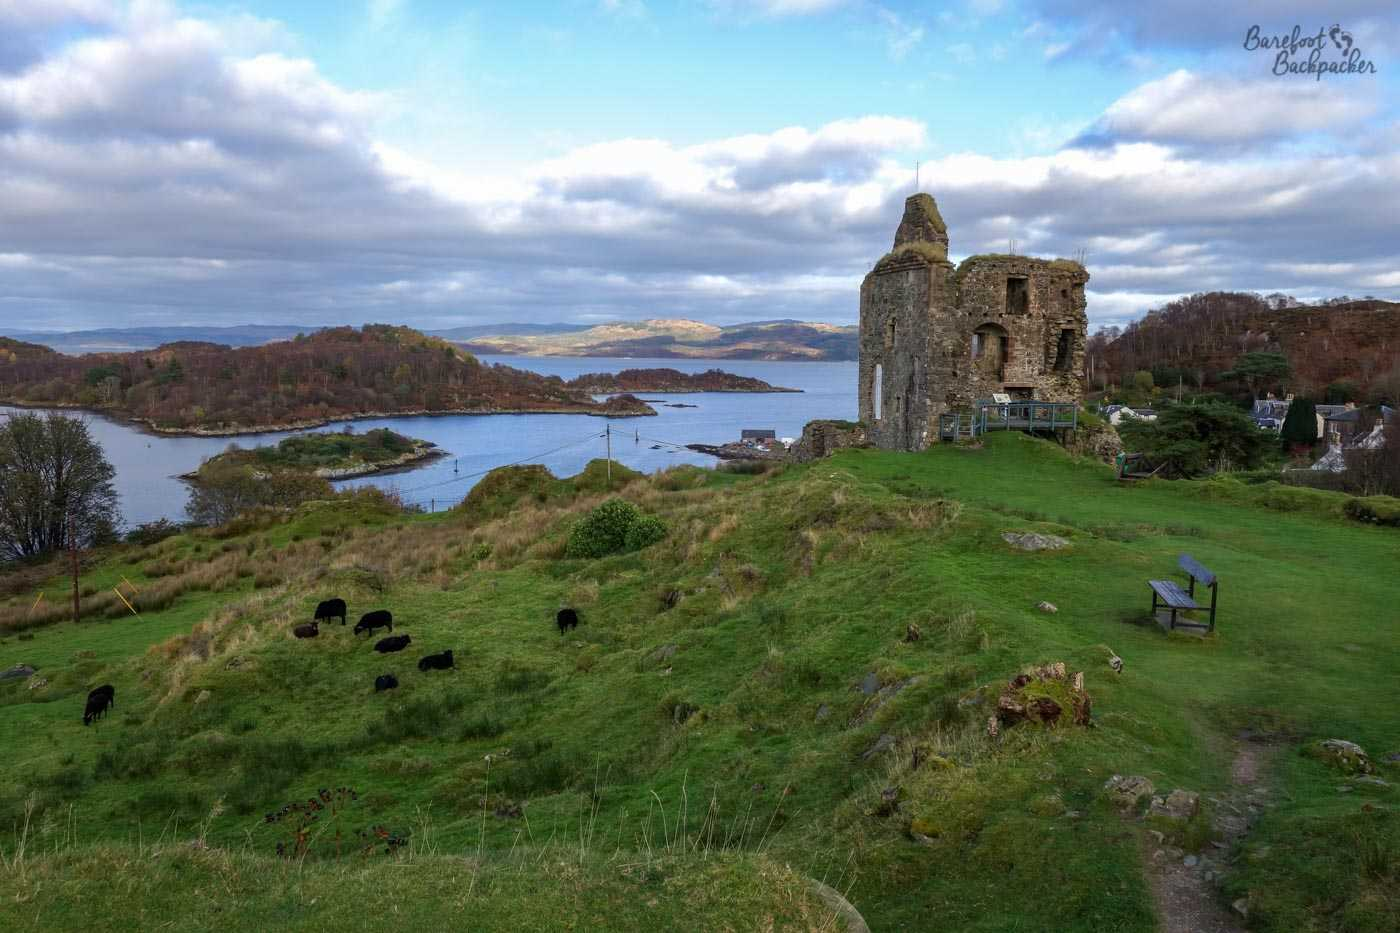 Ruins of a stone tower/castle on the right of shot, atop a green hill. Behind, and to the left, are the loch, some islands, and distant hills, mostly covered in trees.